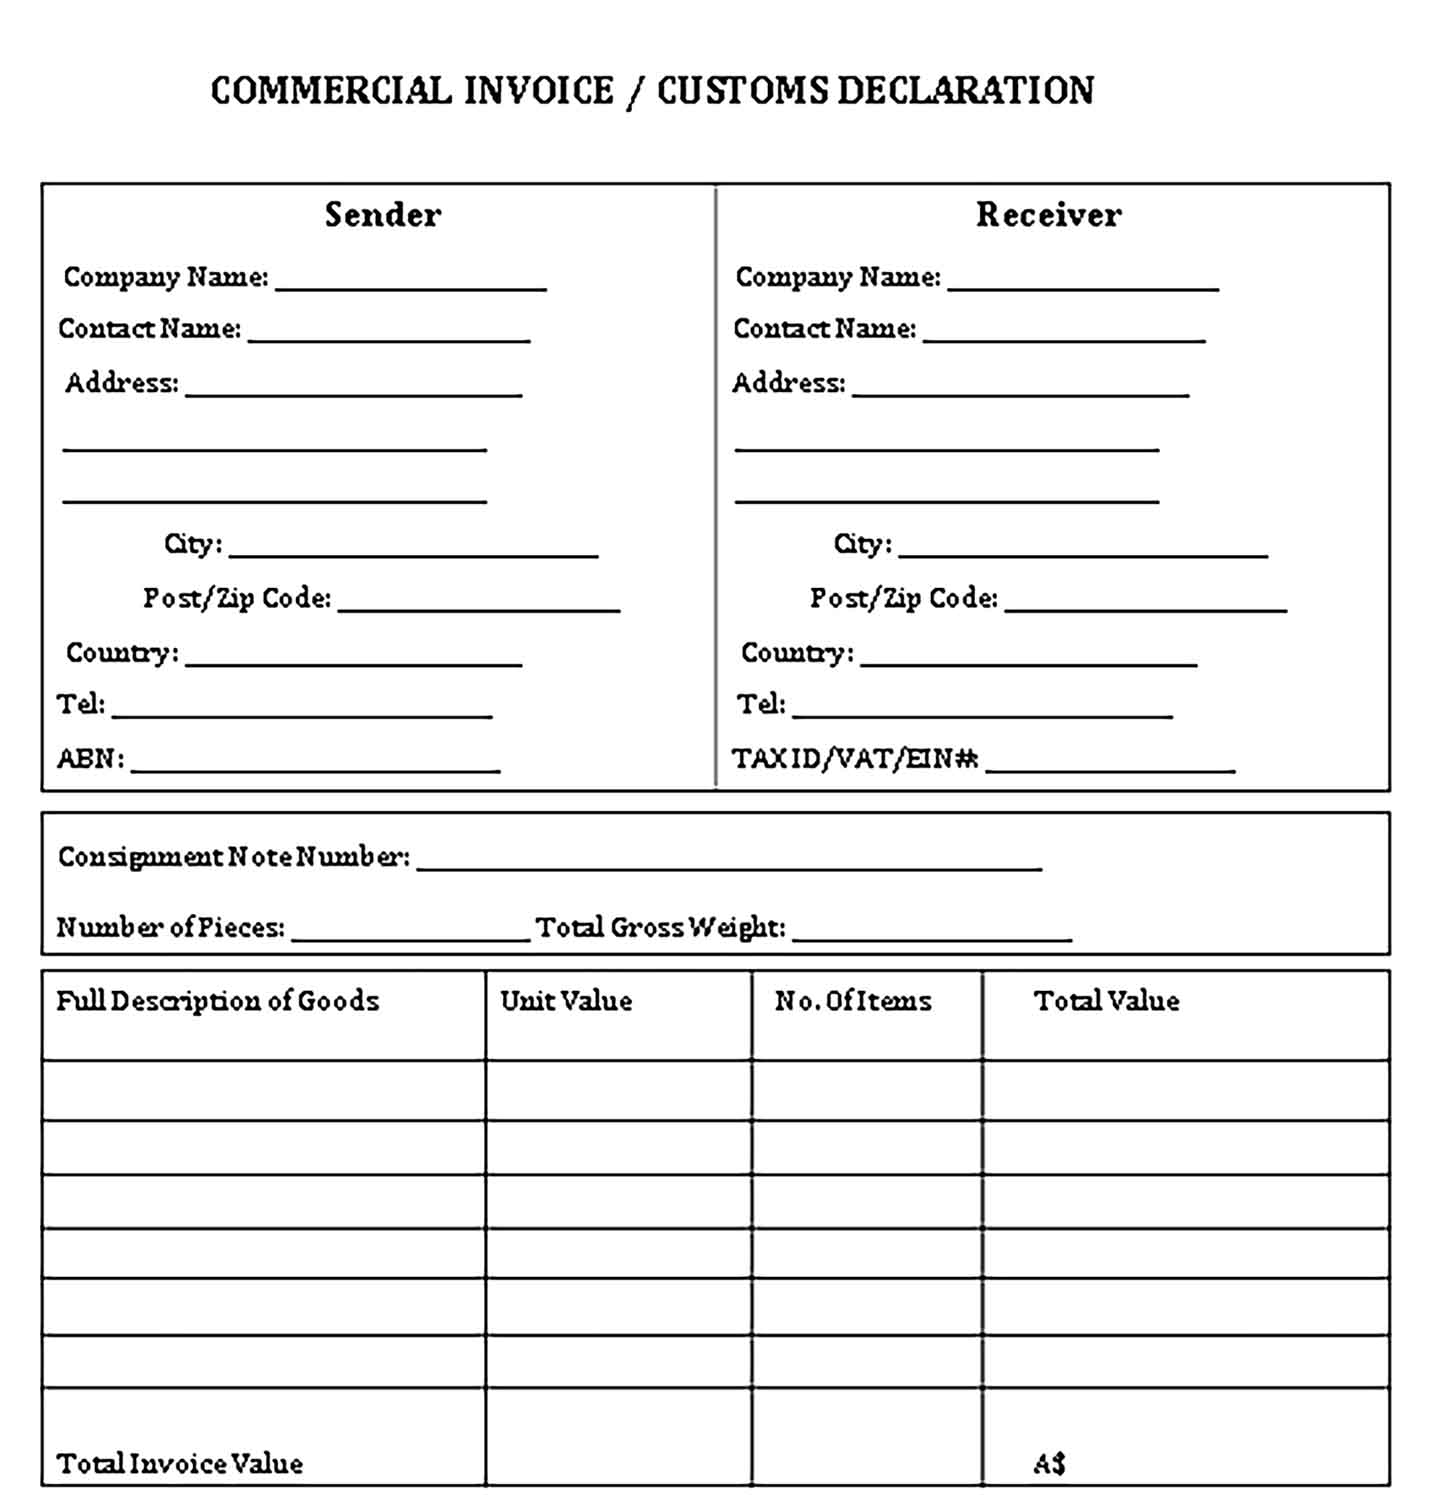 Sample Templates Commercial Invoice Custom Decleration 1